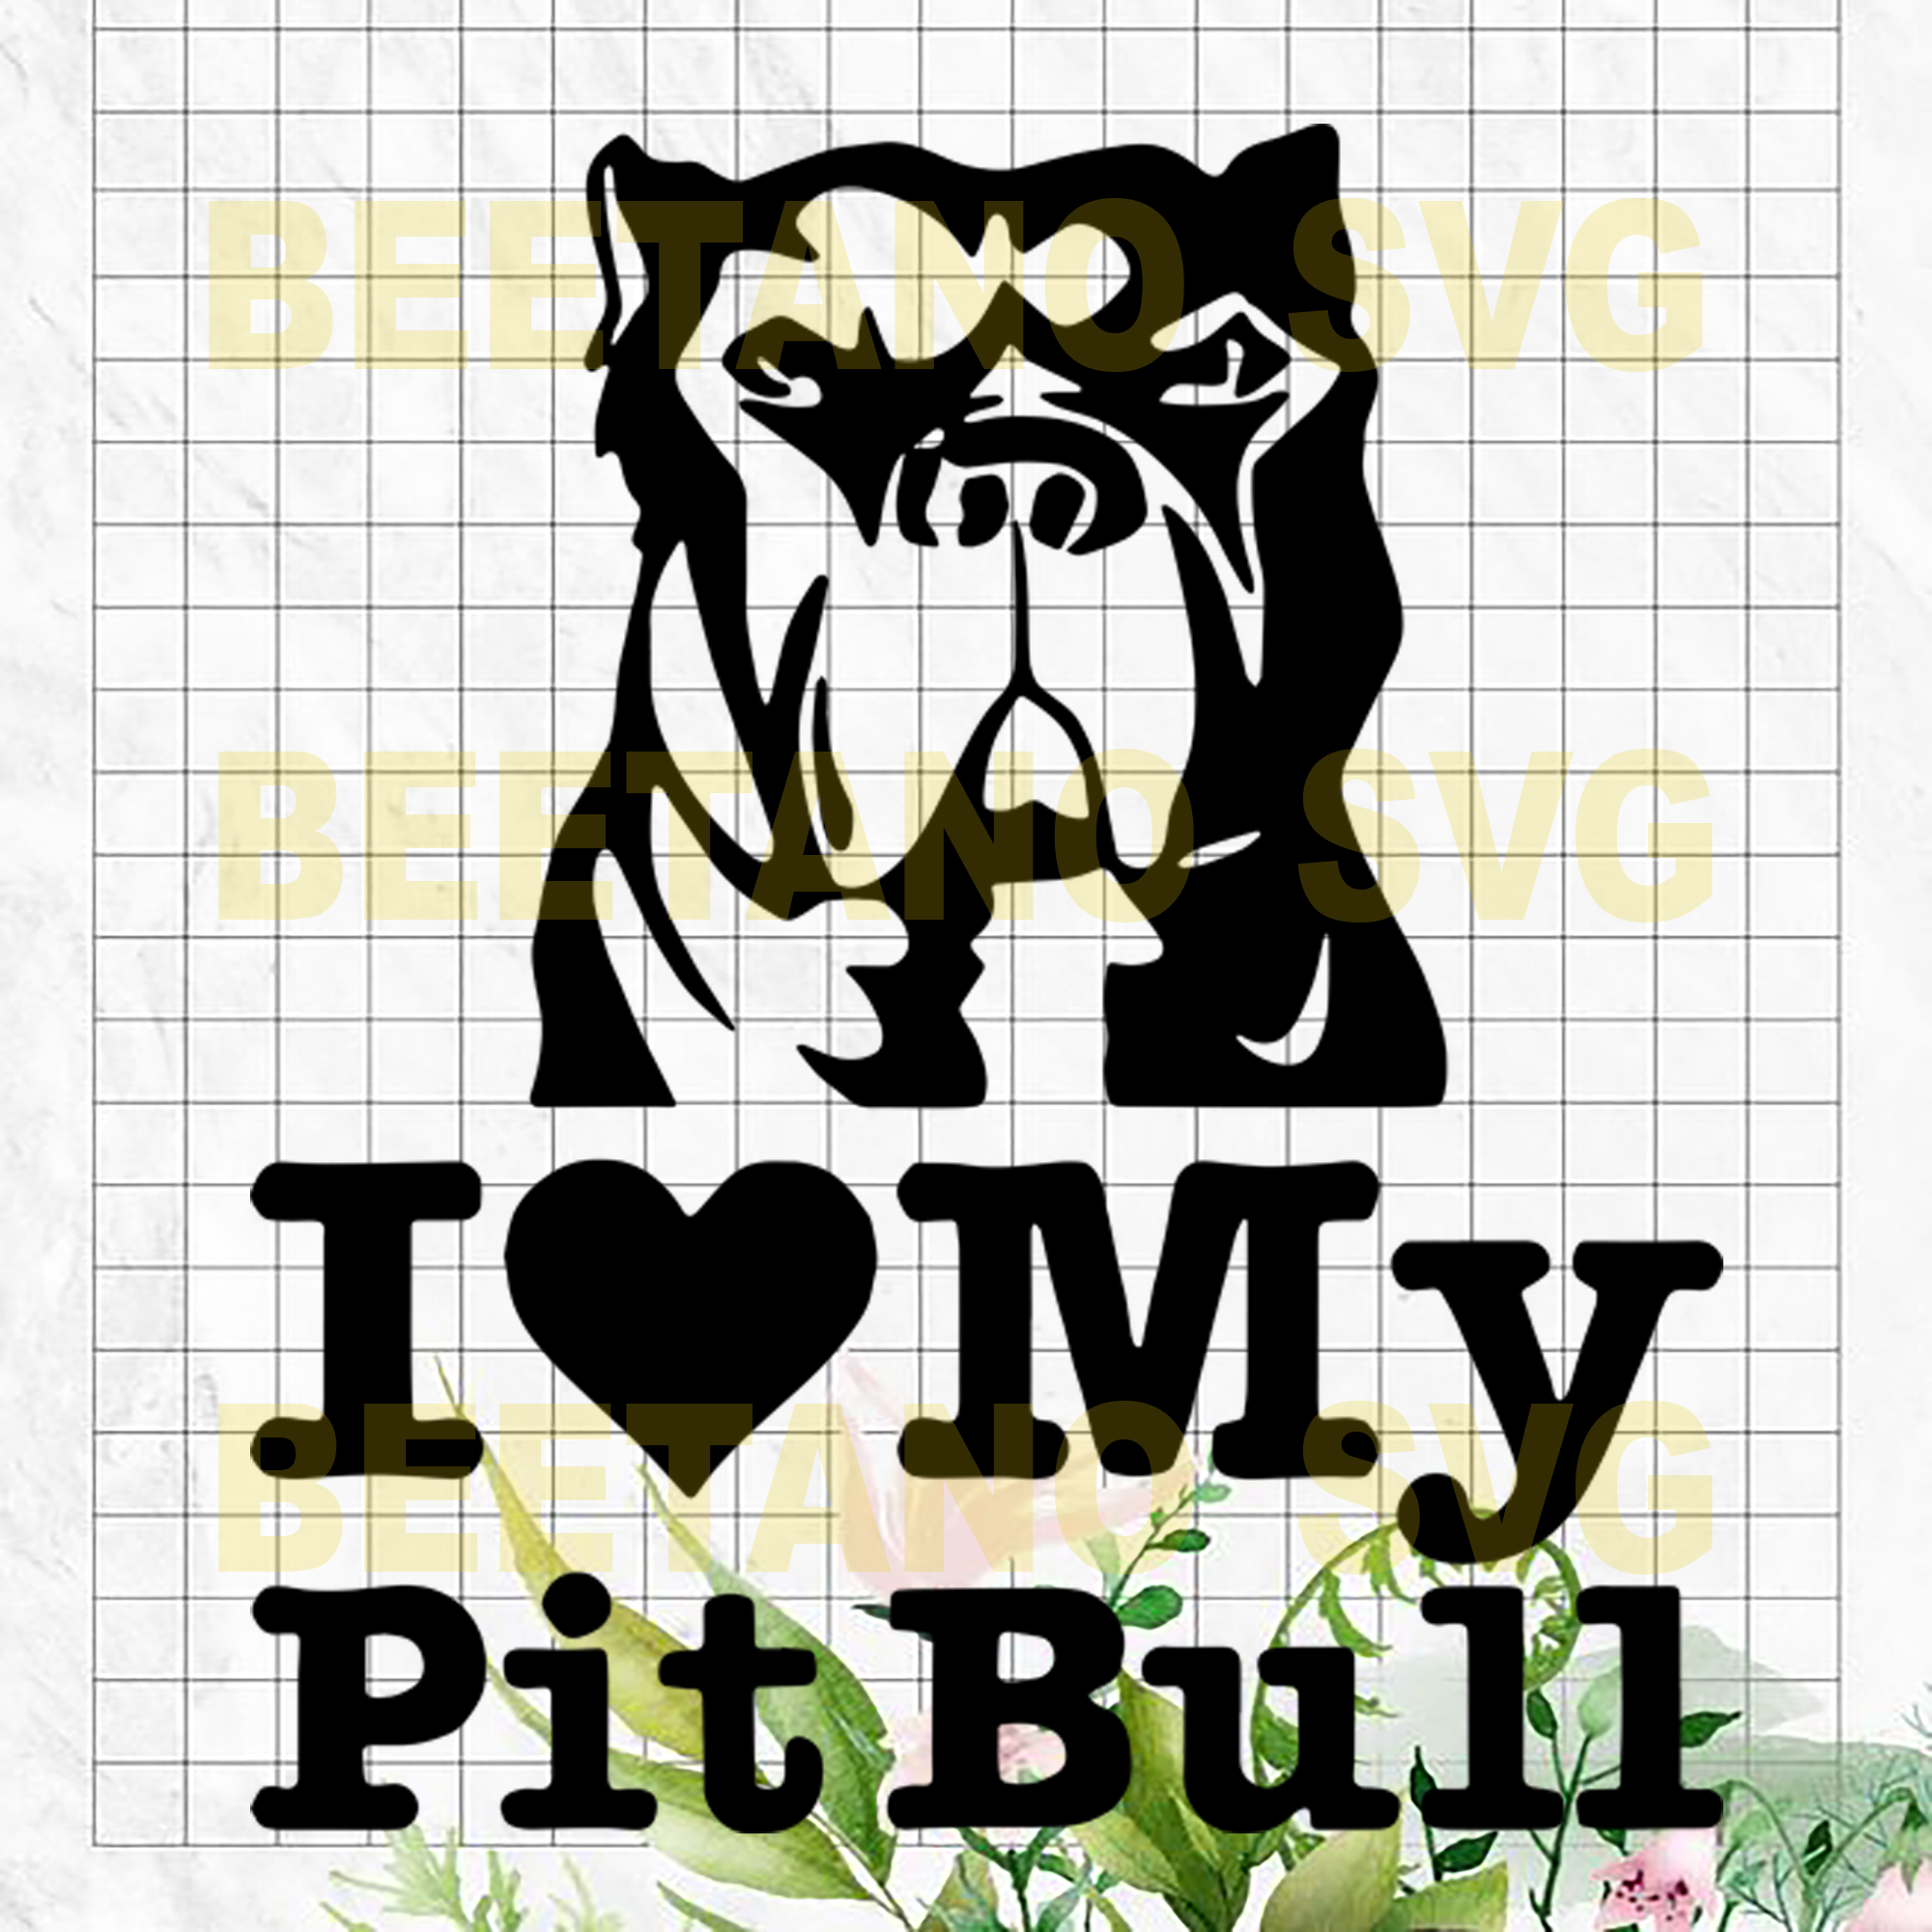 I love my Pitbull Svg, Pitbull Svg Files, Pitbull Cutting Files, Dog Svg, Animal Svg, Dog Lover Svg